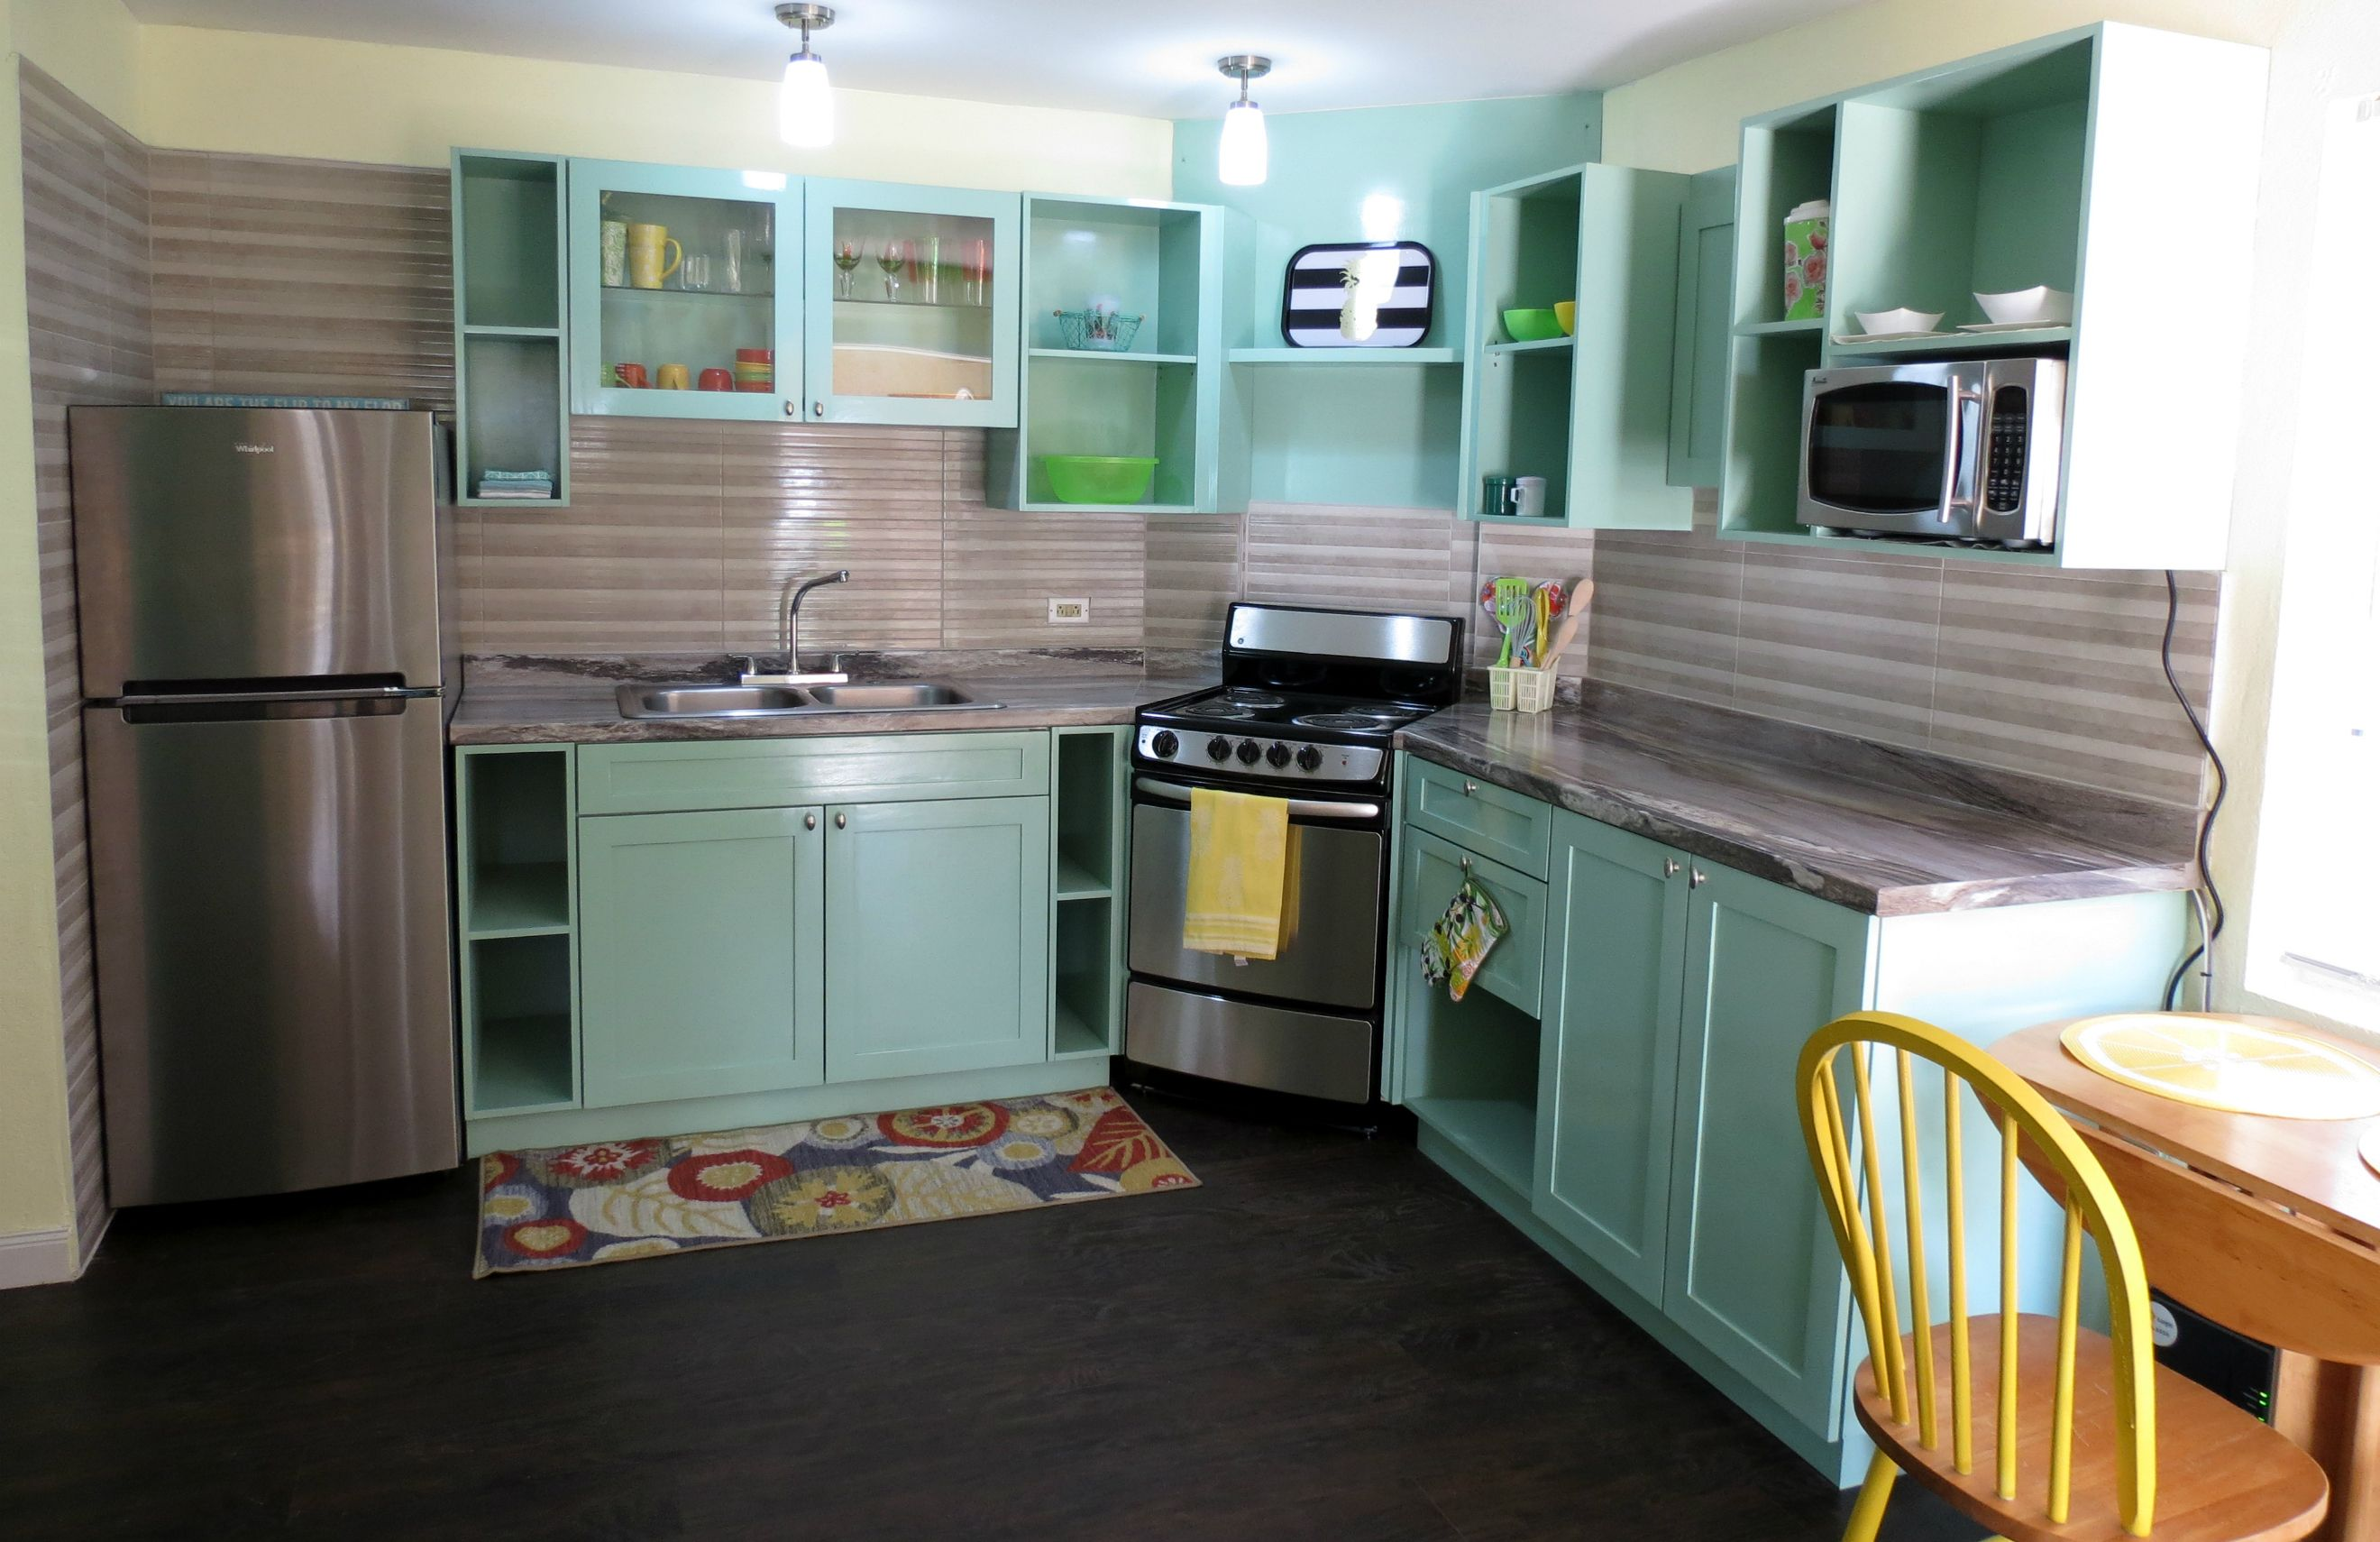 Apartment 8s new kitchen paradise pointe rentals west bay grand cayman